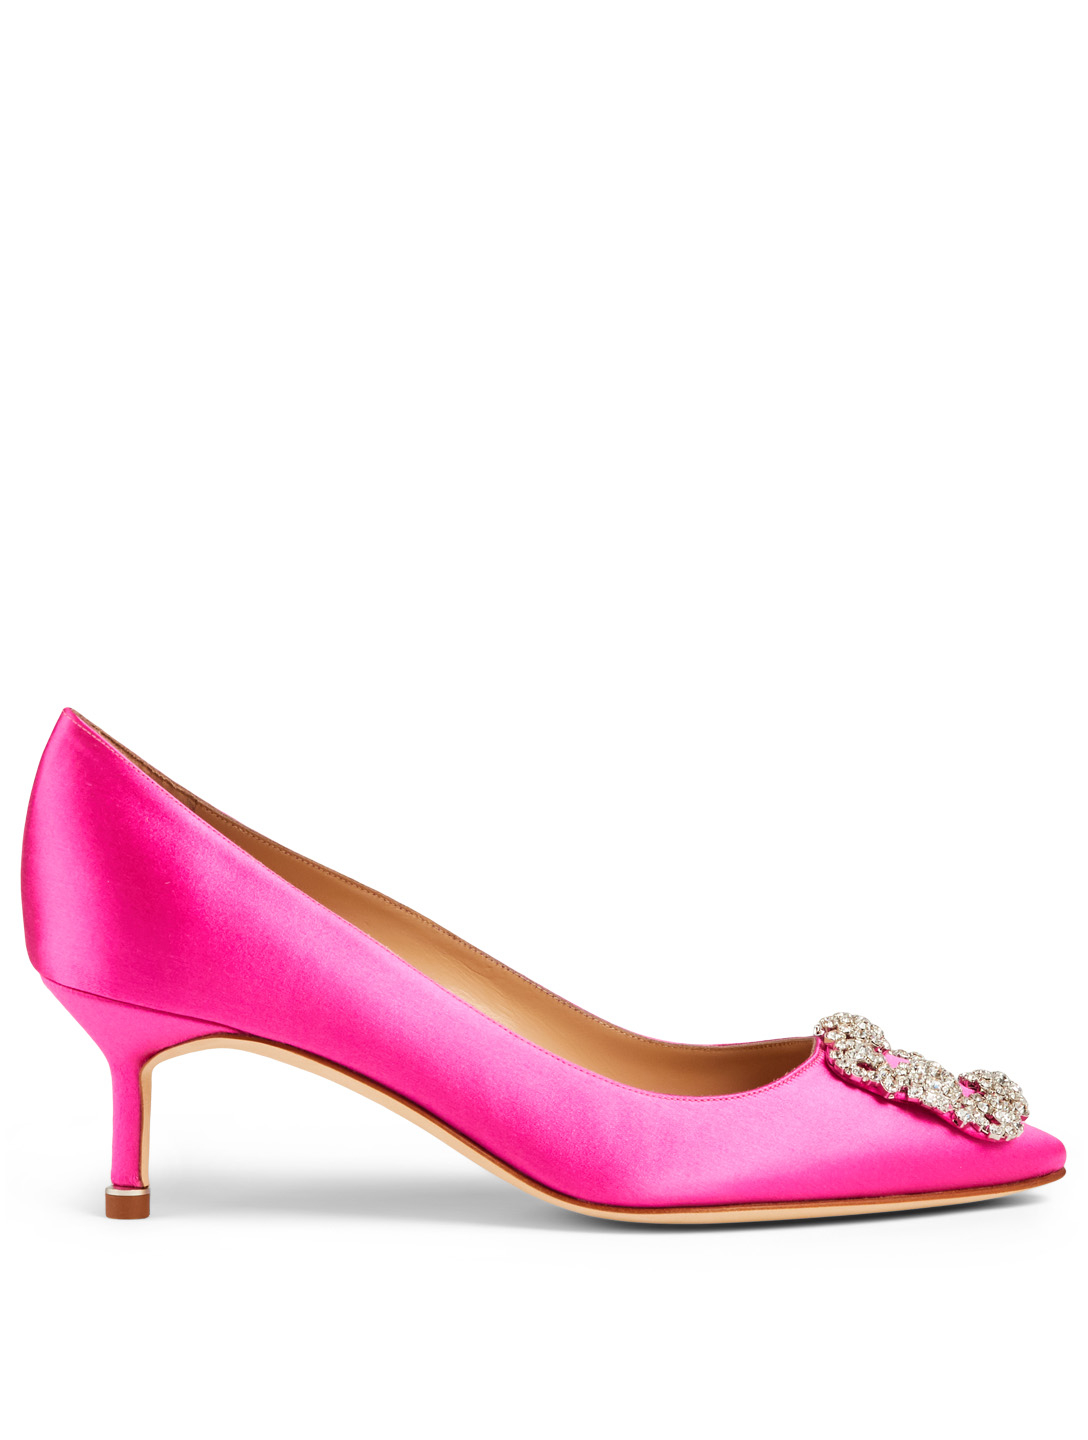 MANOLO BLAHNIK Hangisi 50 Satin Pumps Women's Pink